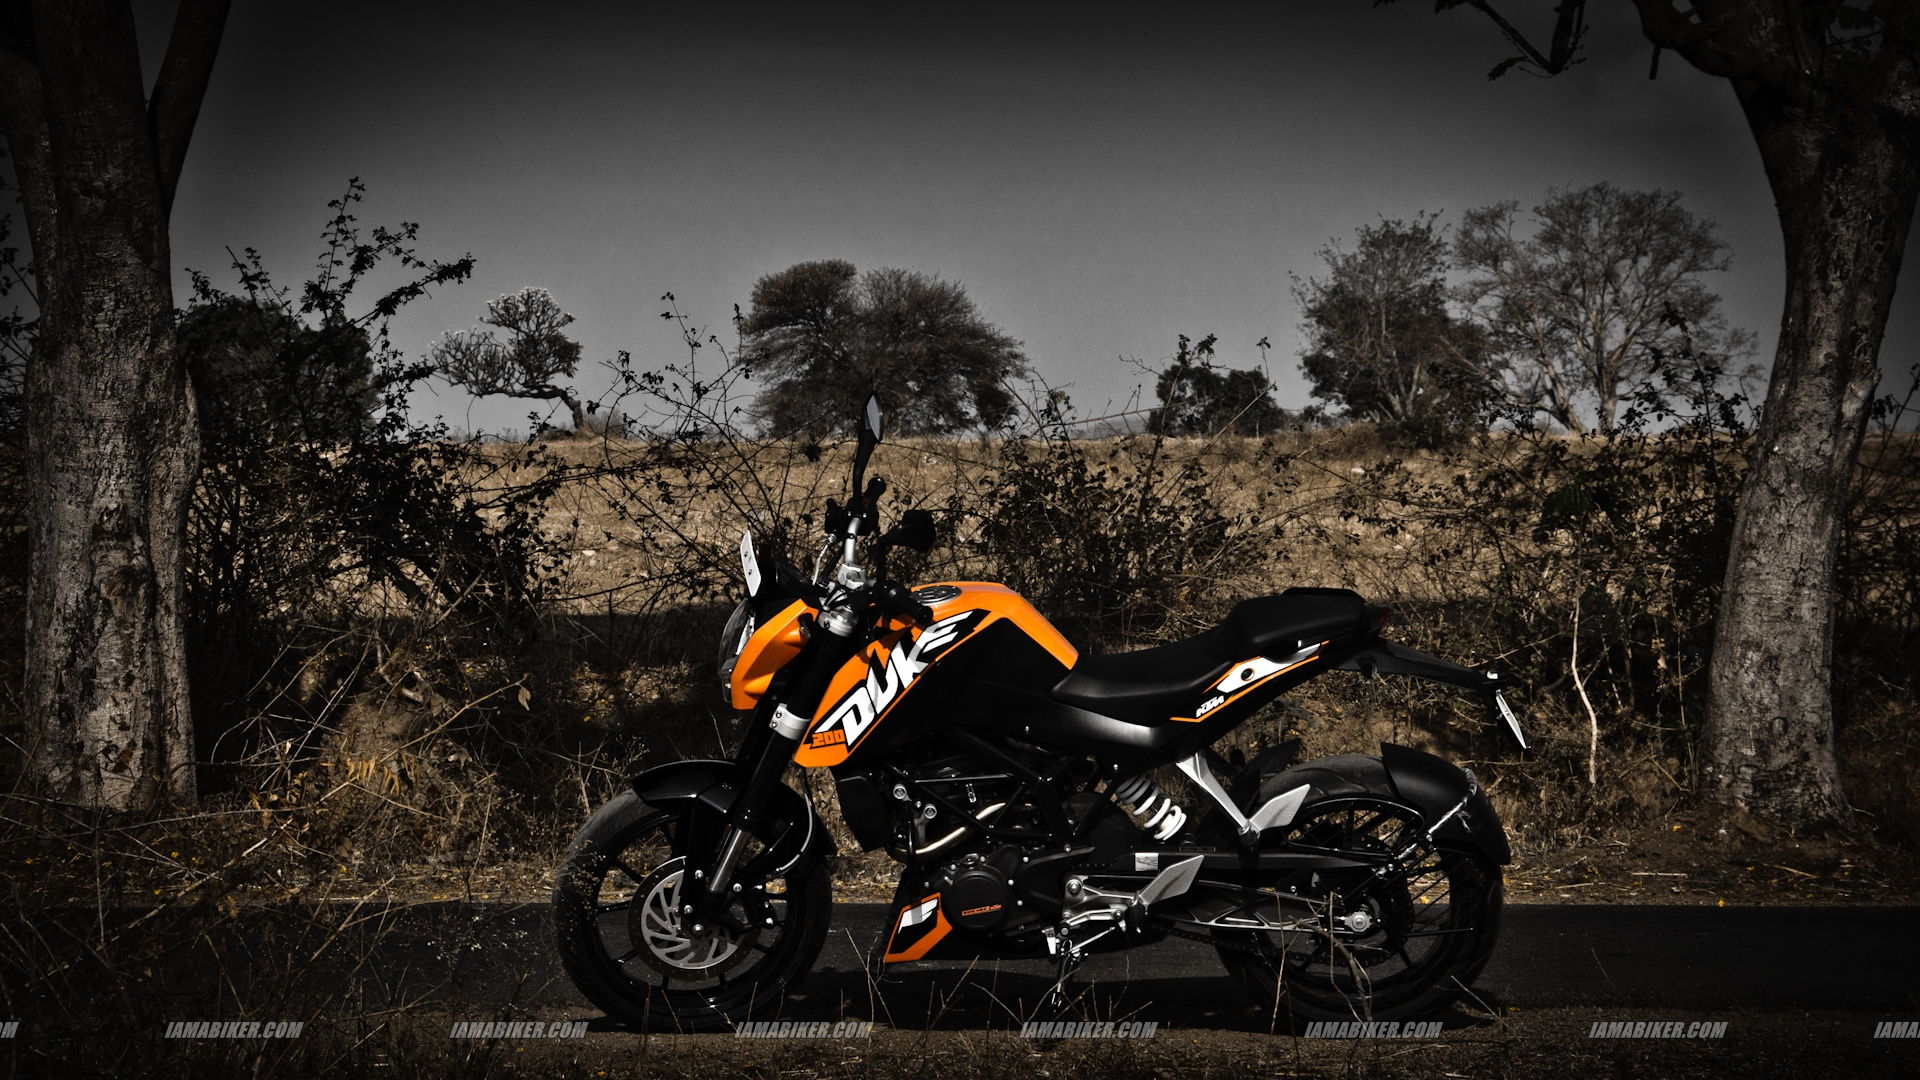 KTM Duke 200 HD wallpapers 1920x1080